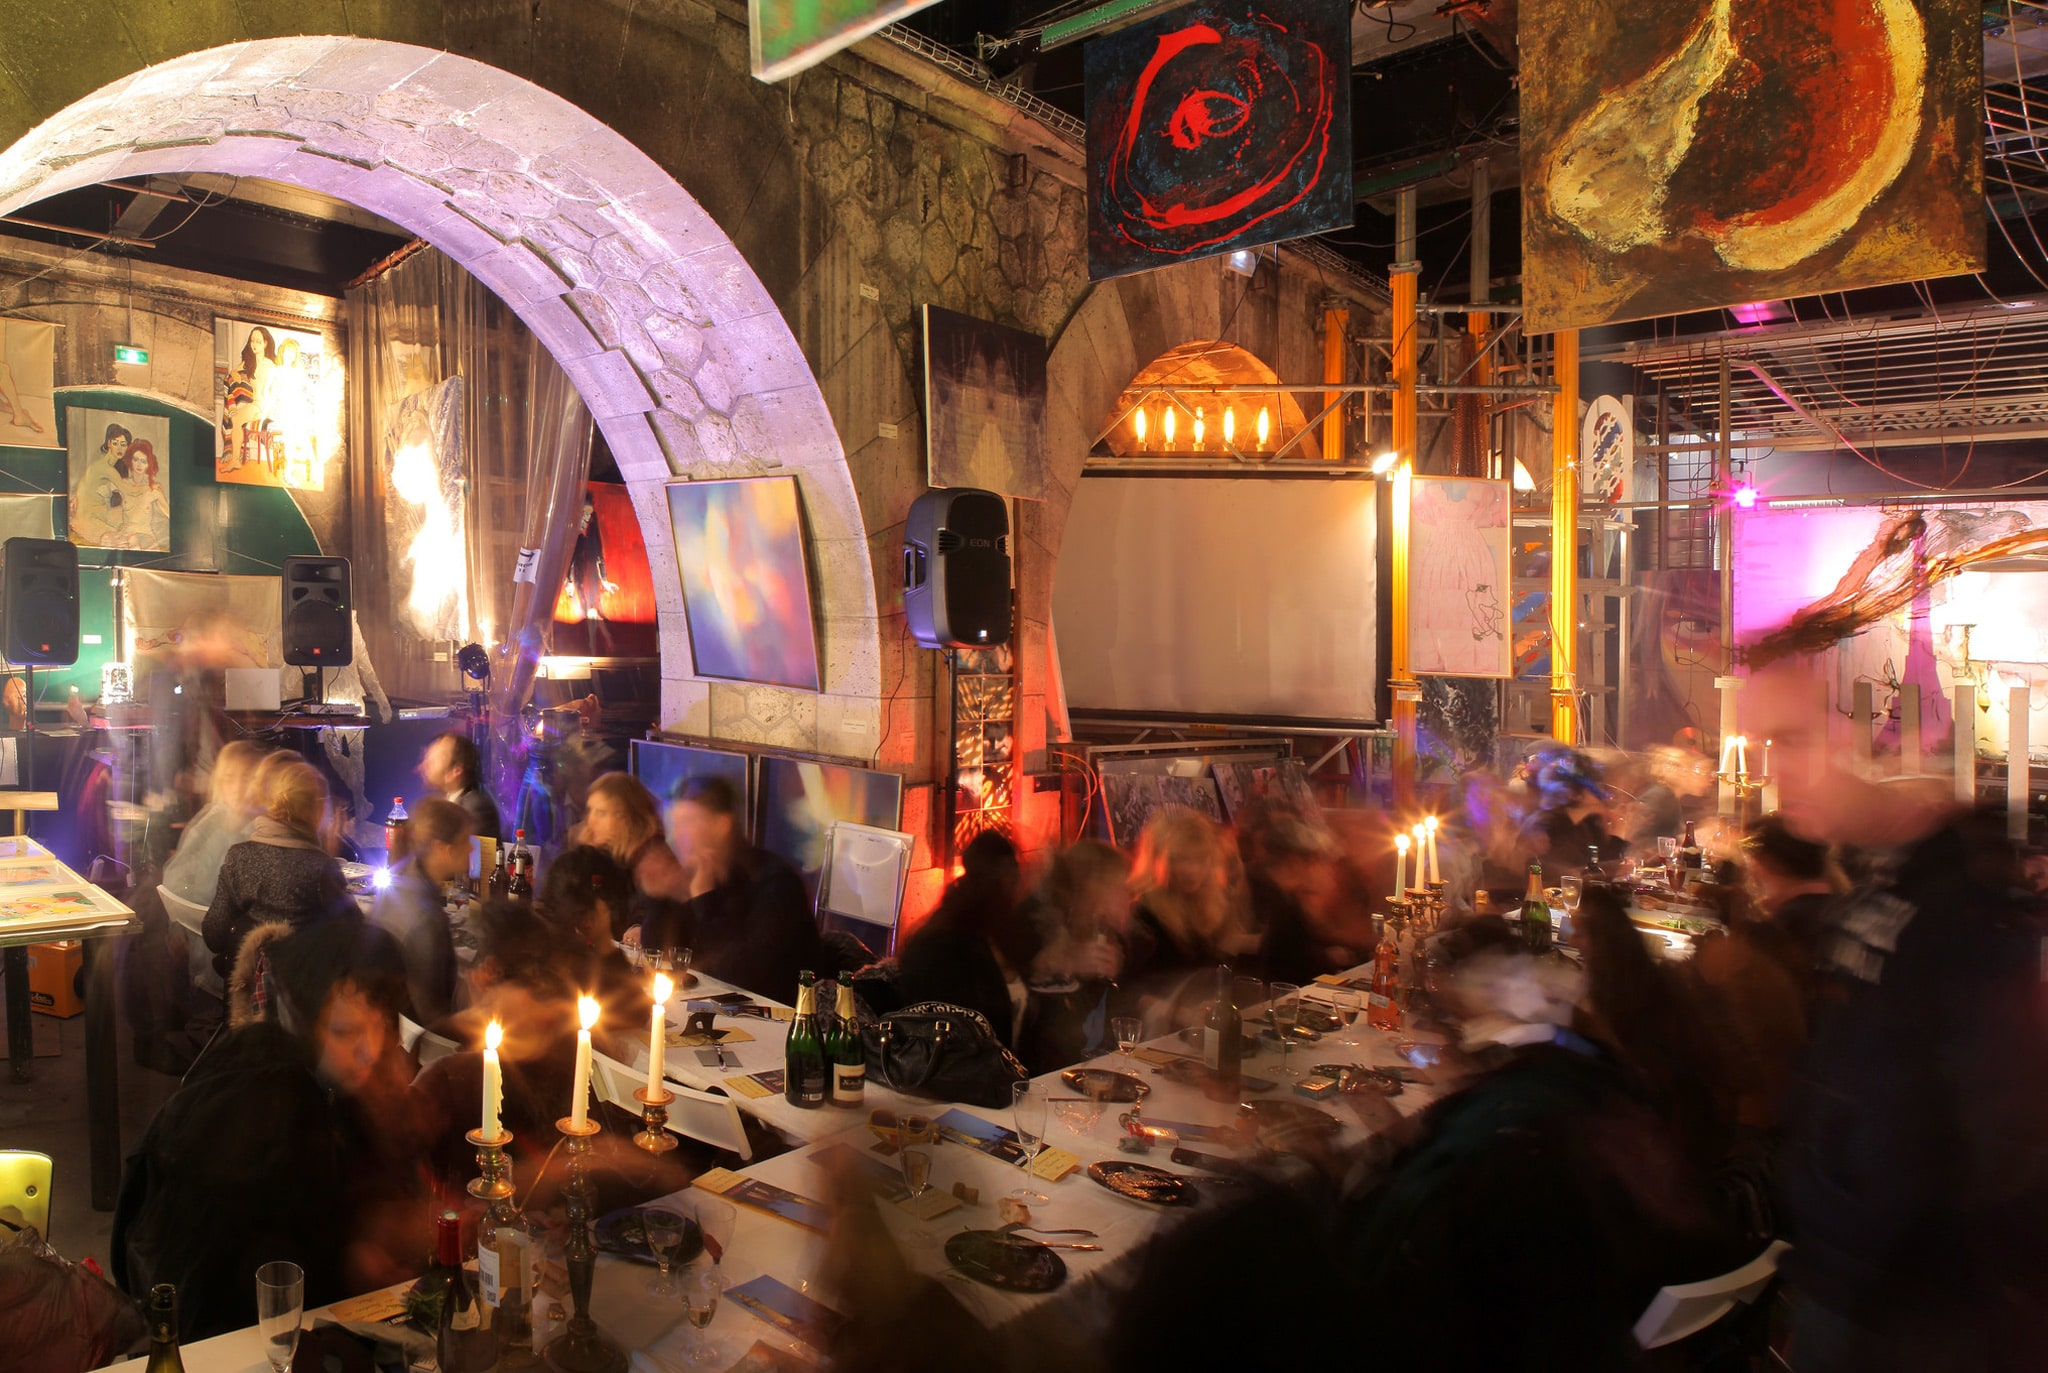 WATO : A glamorous dinner in a clandestine art gallery of Paris